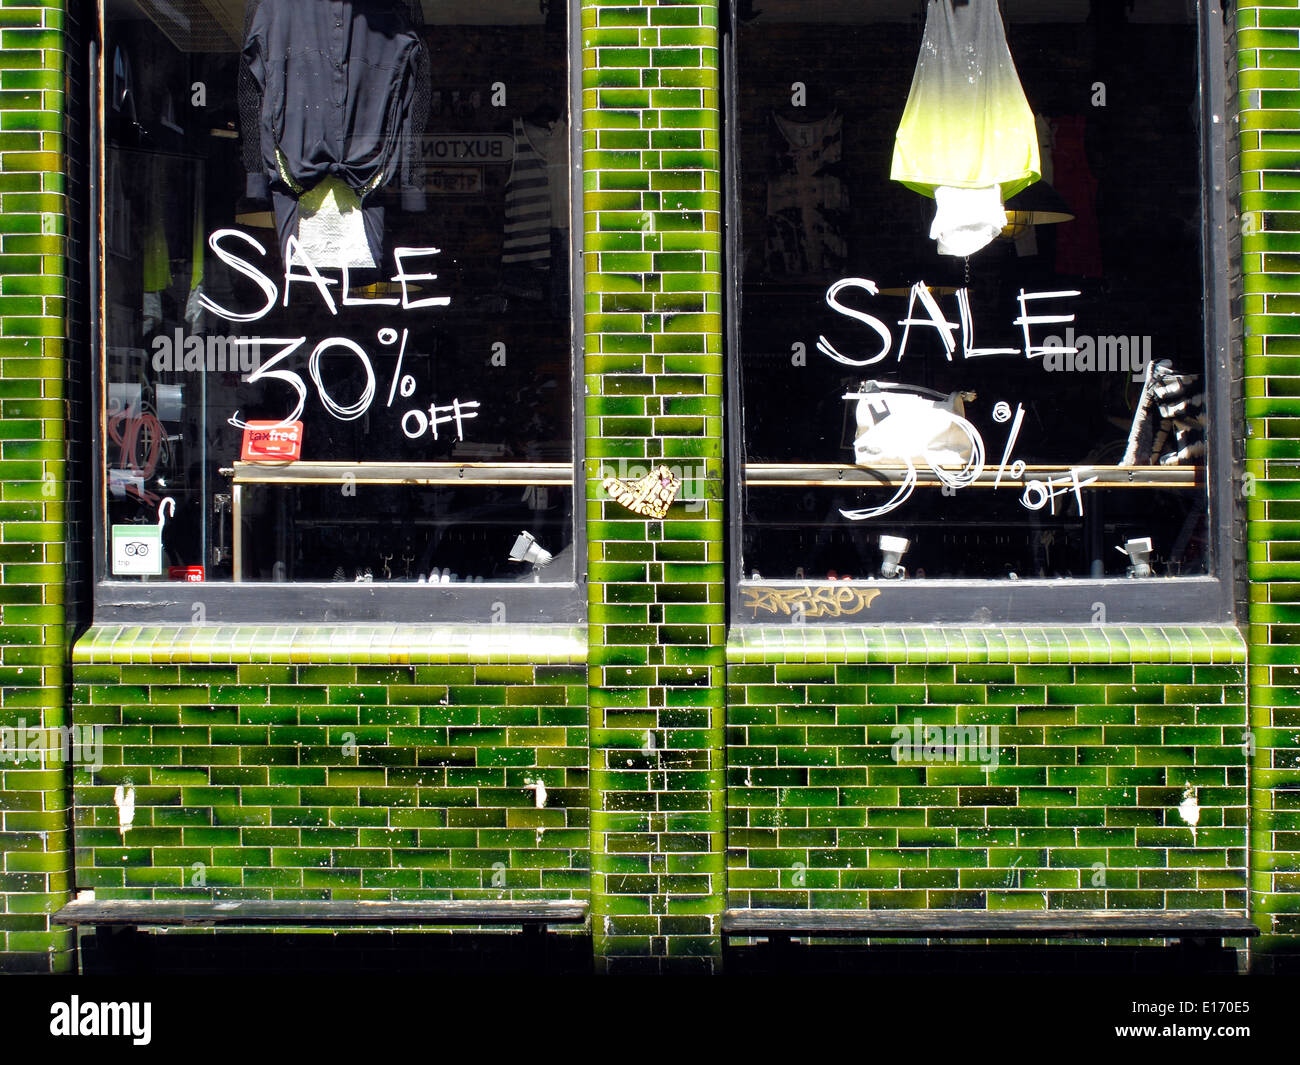 Shop windows on Buxton Street, off Brick Lane, Spitalfields,  East London, England, UK - Stock Image